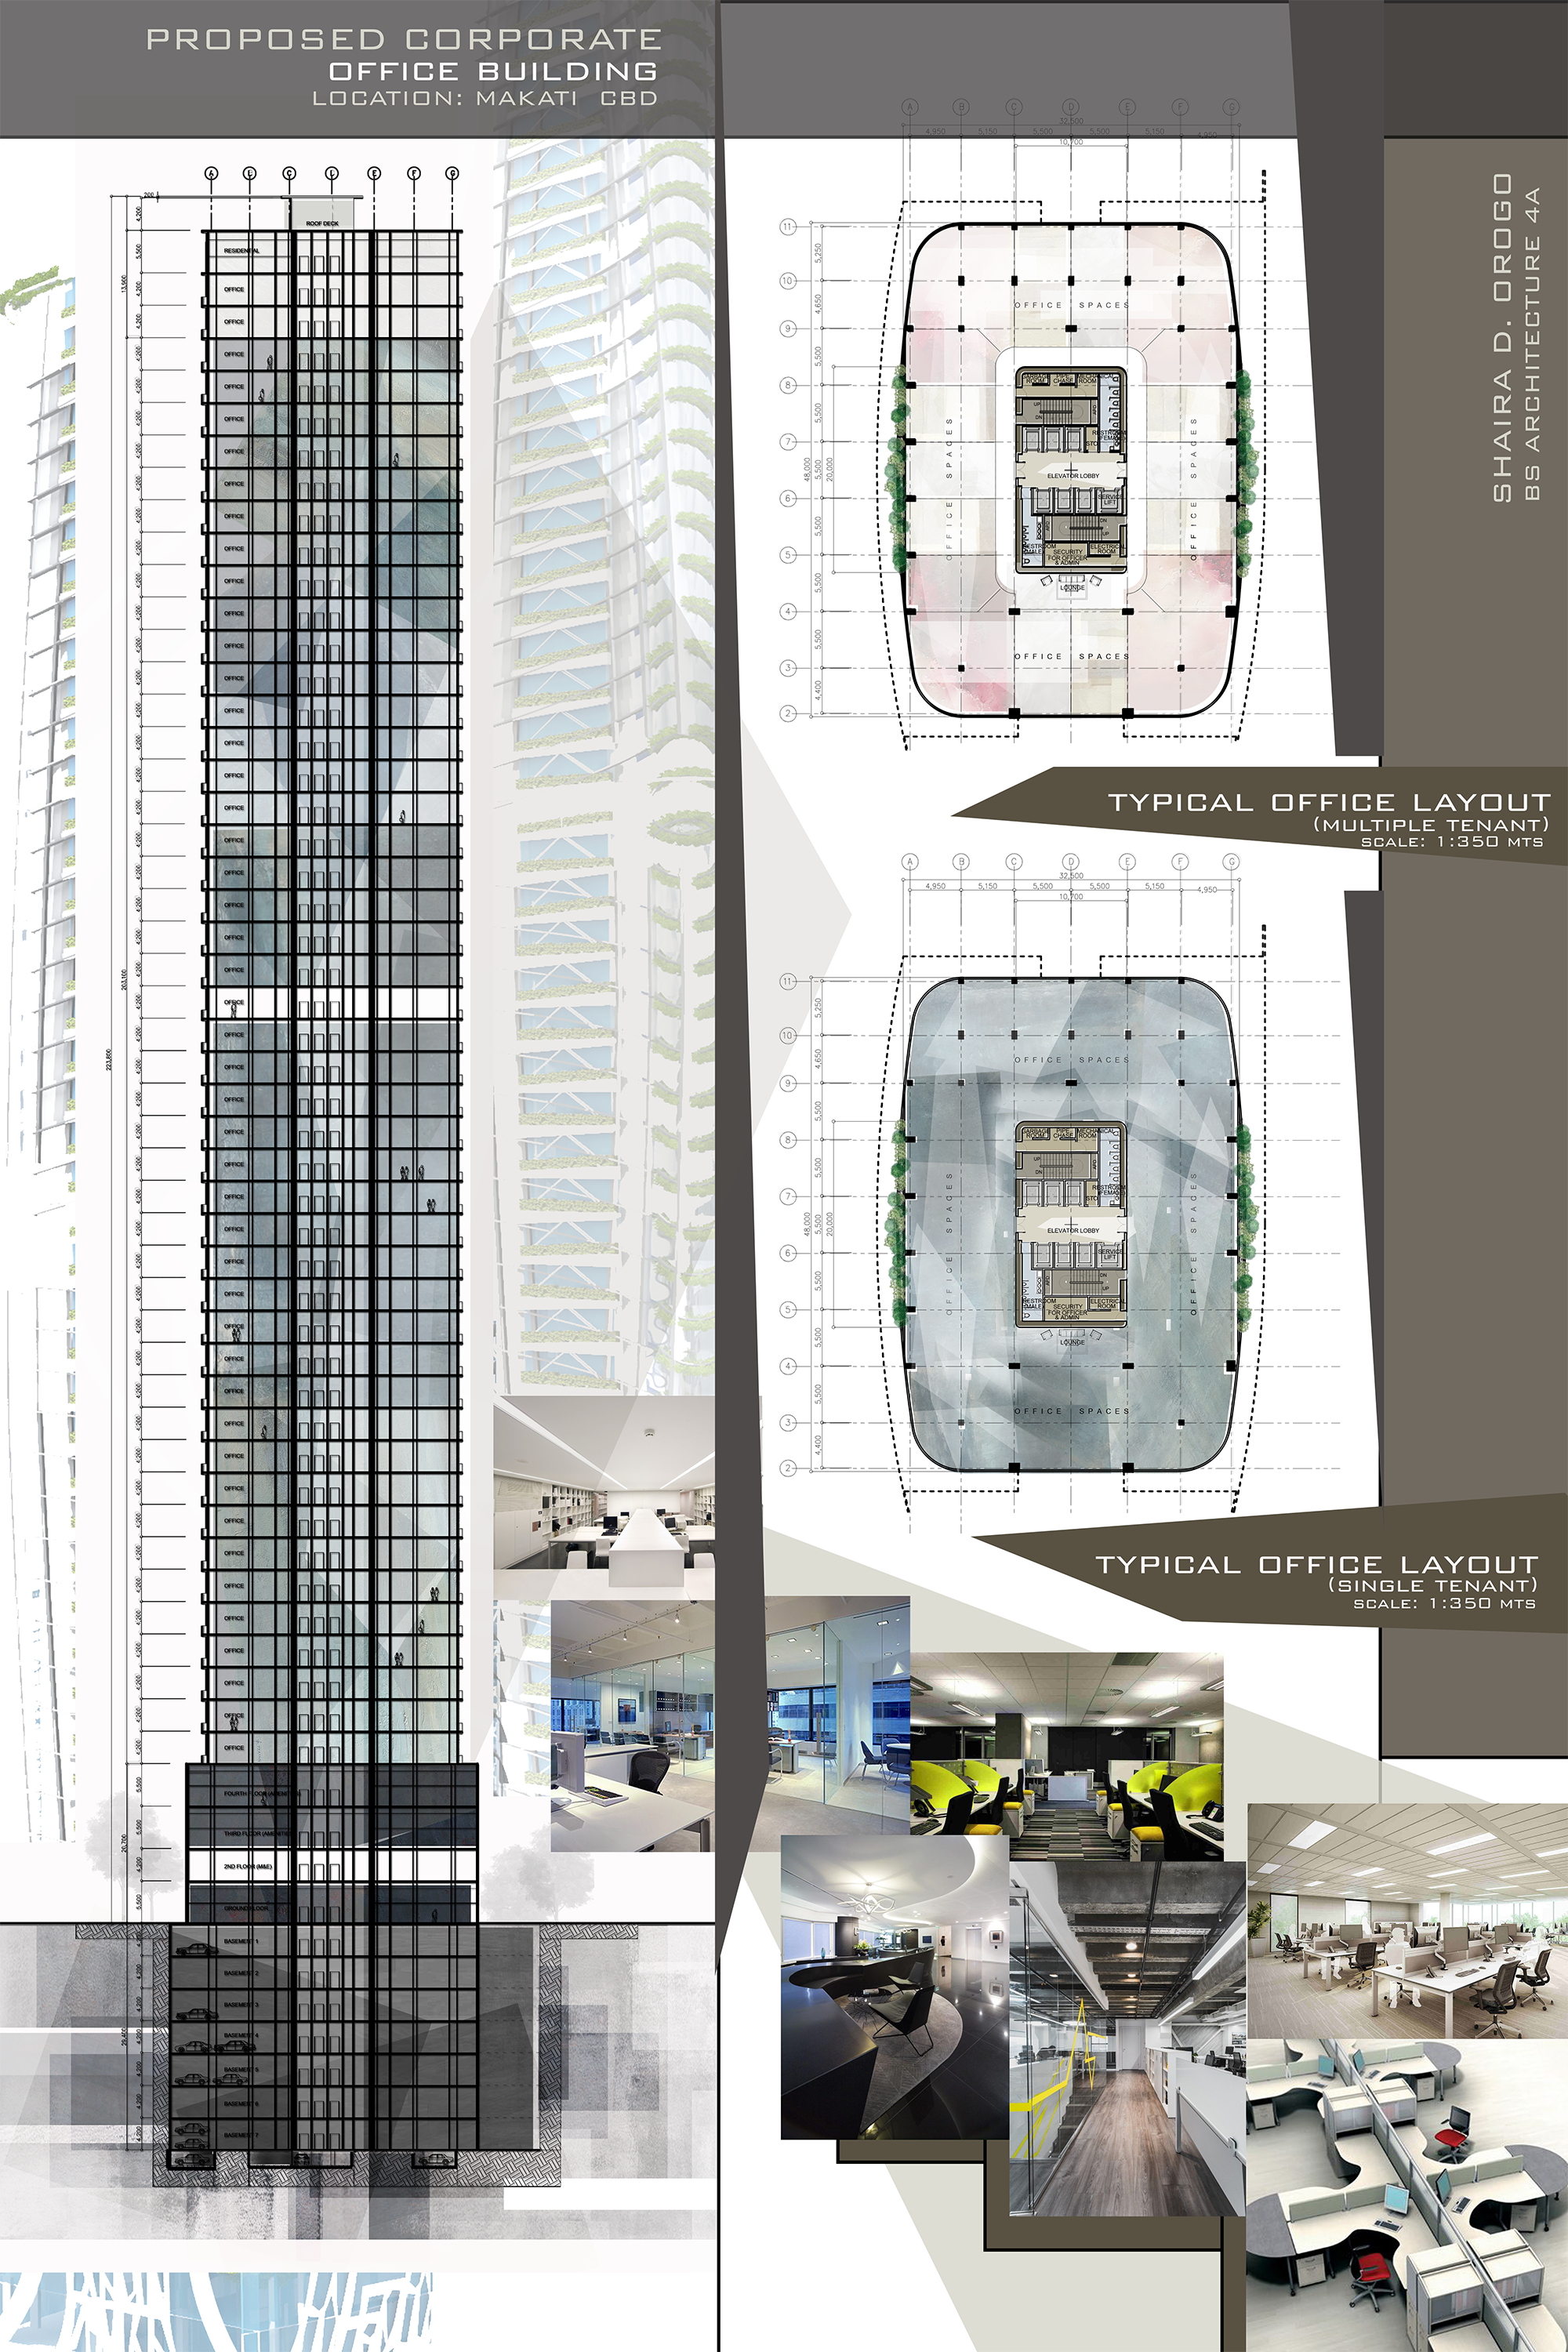 Design 8 Proposed Corporate Office Building High Rise